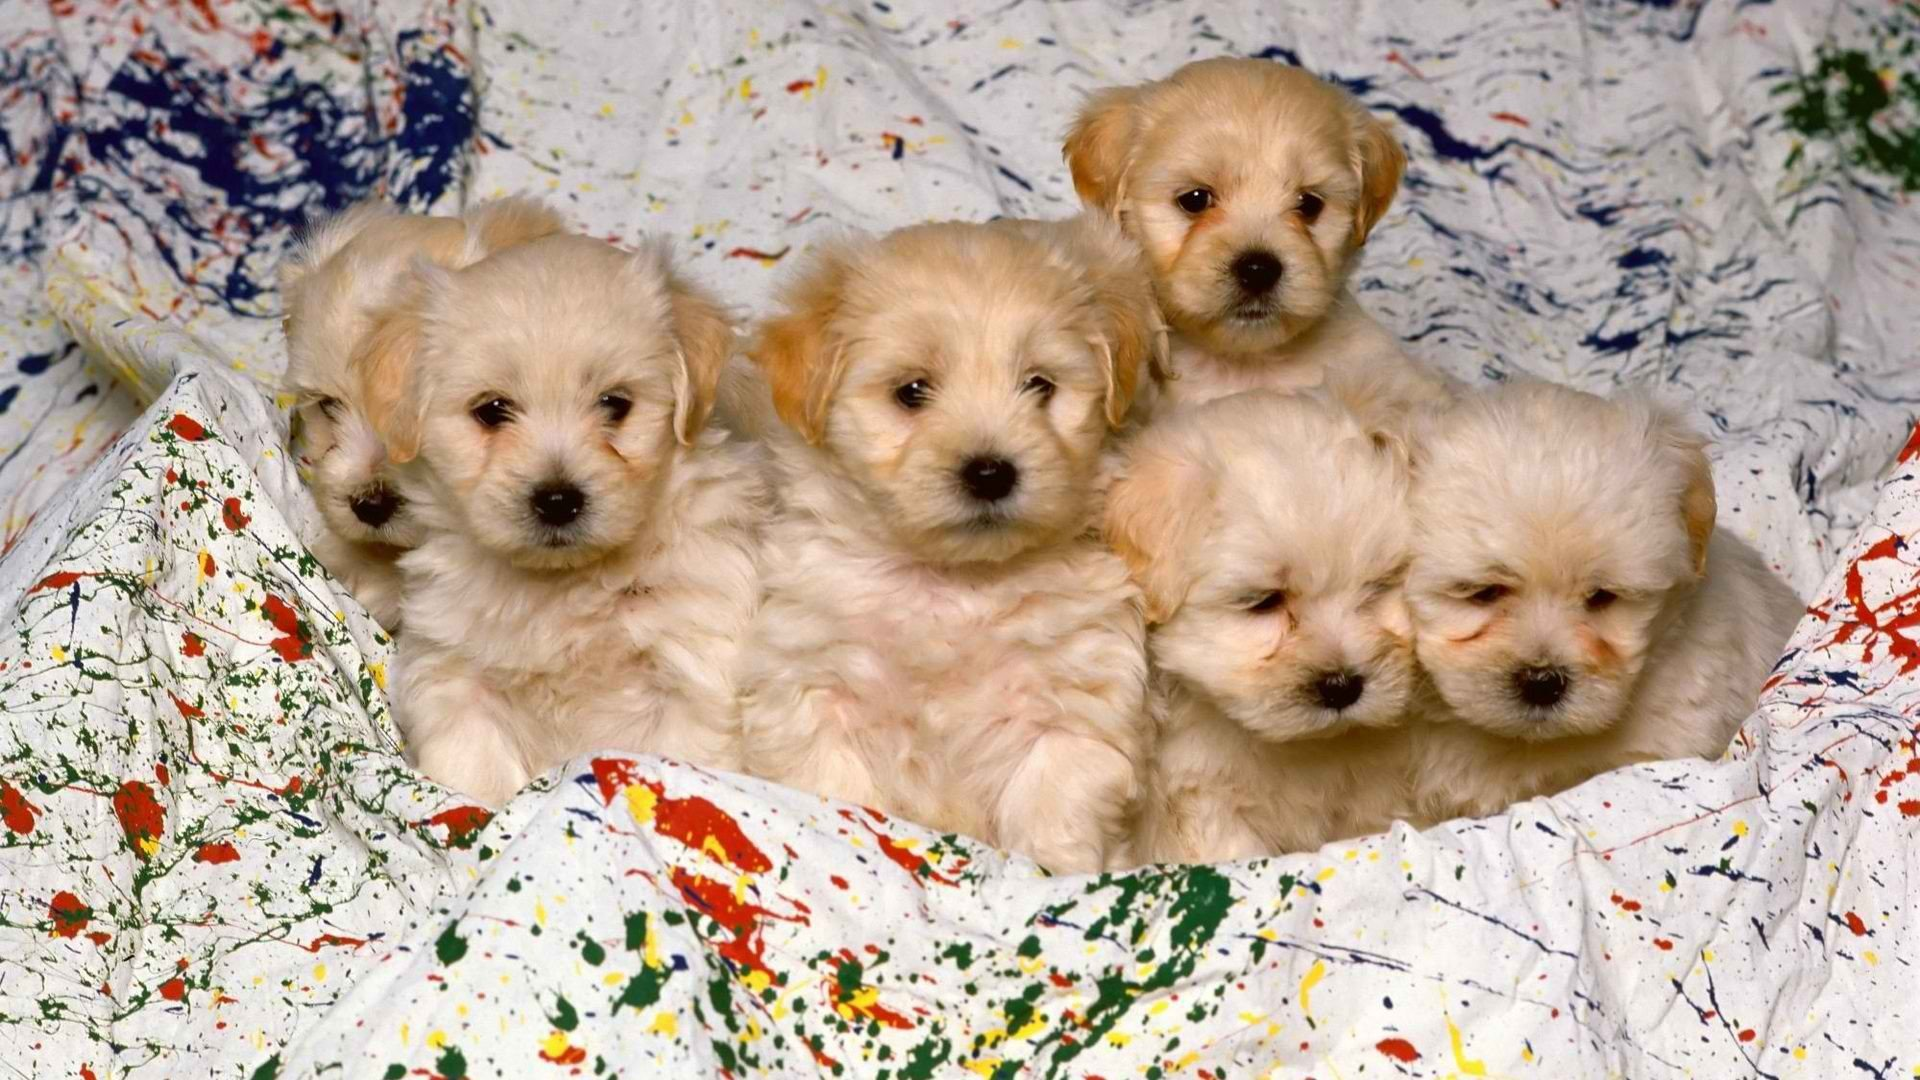 Download 1080p Puppy PC wallpaper ID:46697 for free